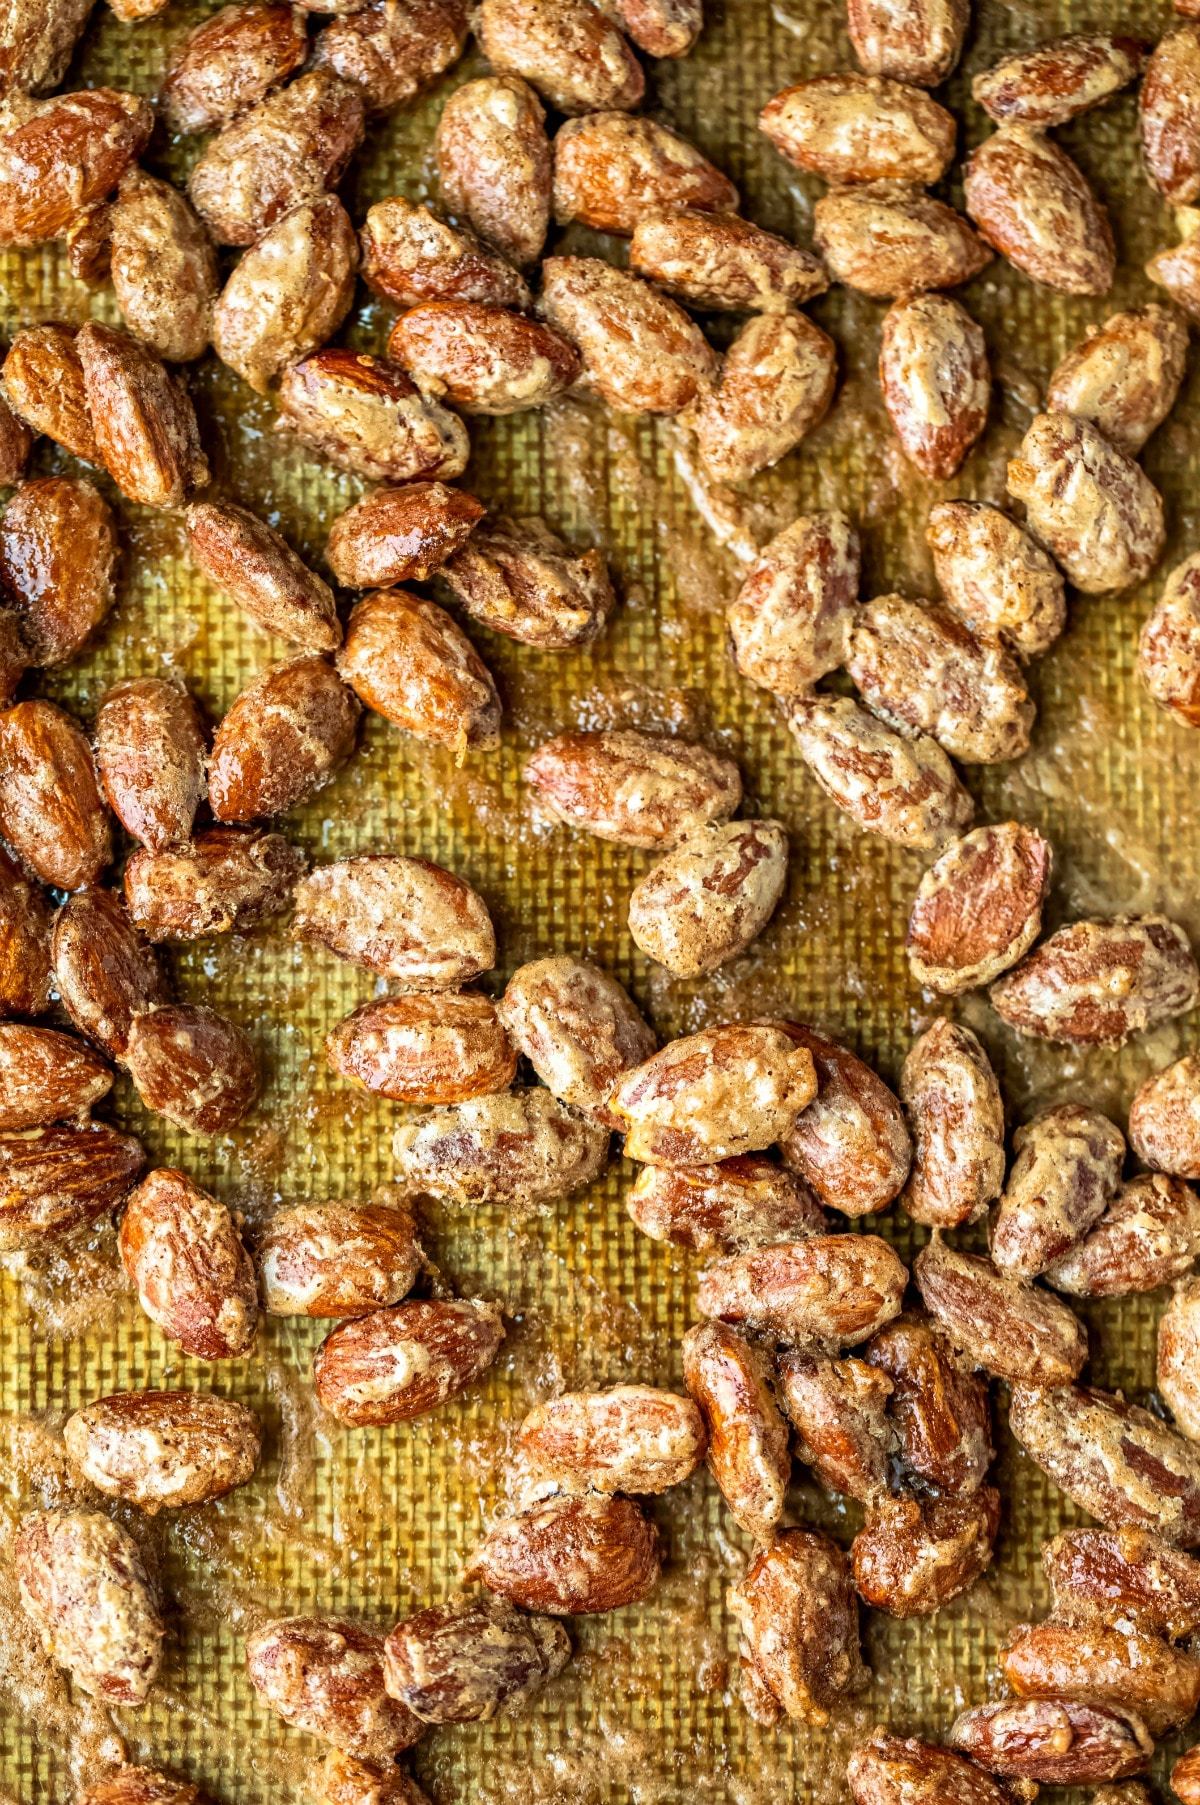 Baked cinnamon almonds on a silicone baking mat